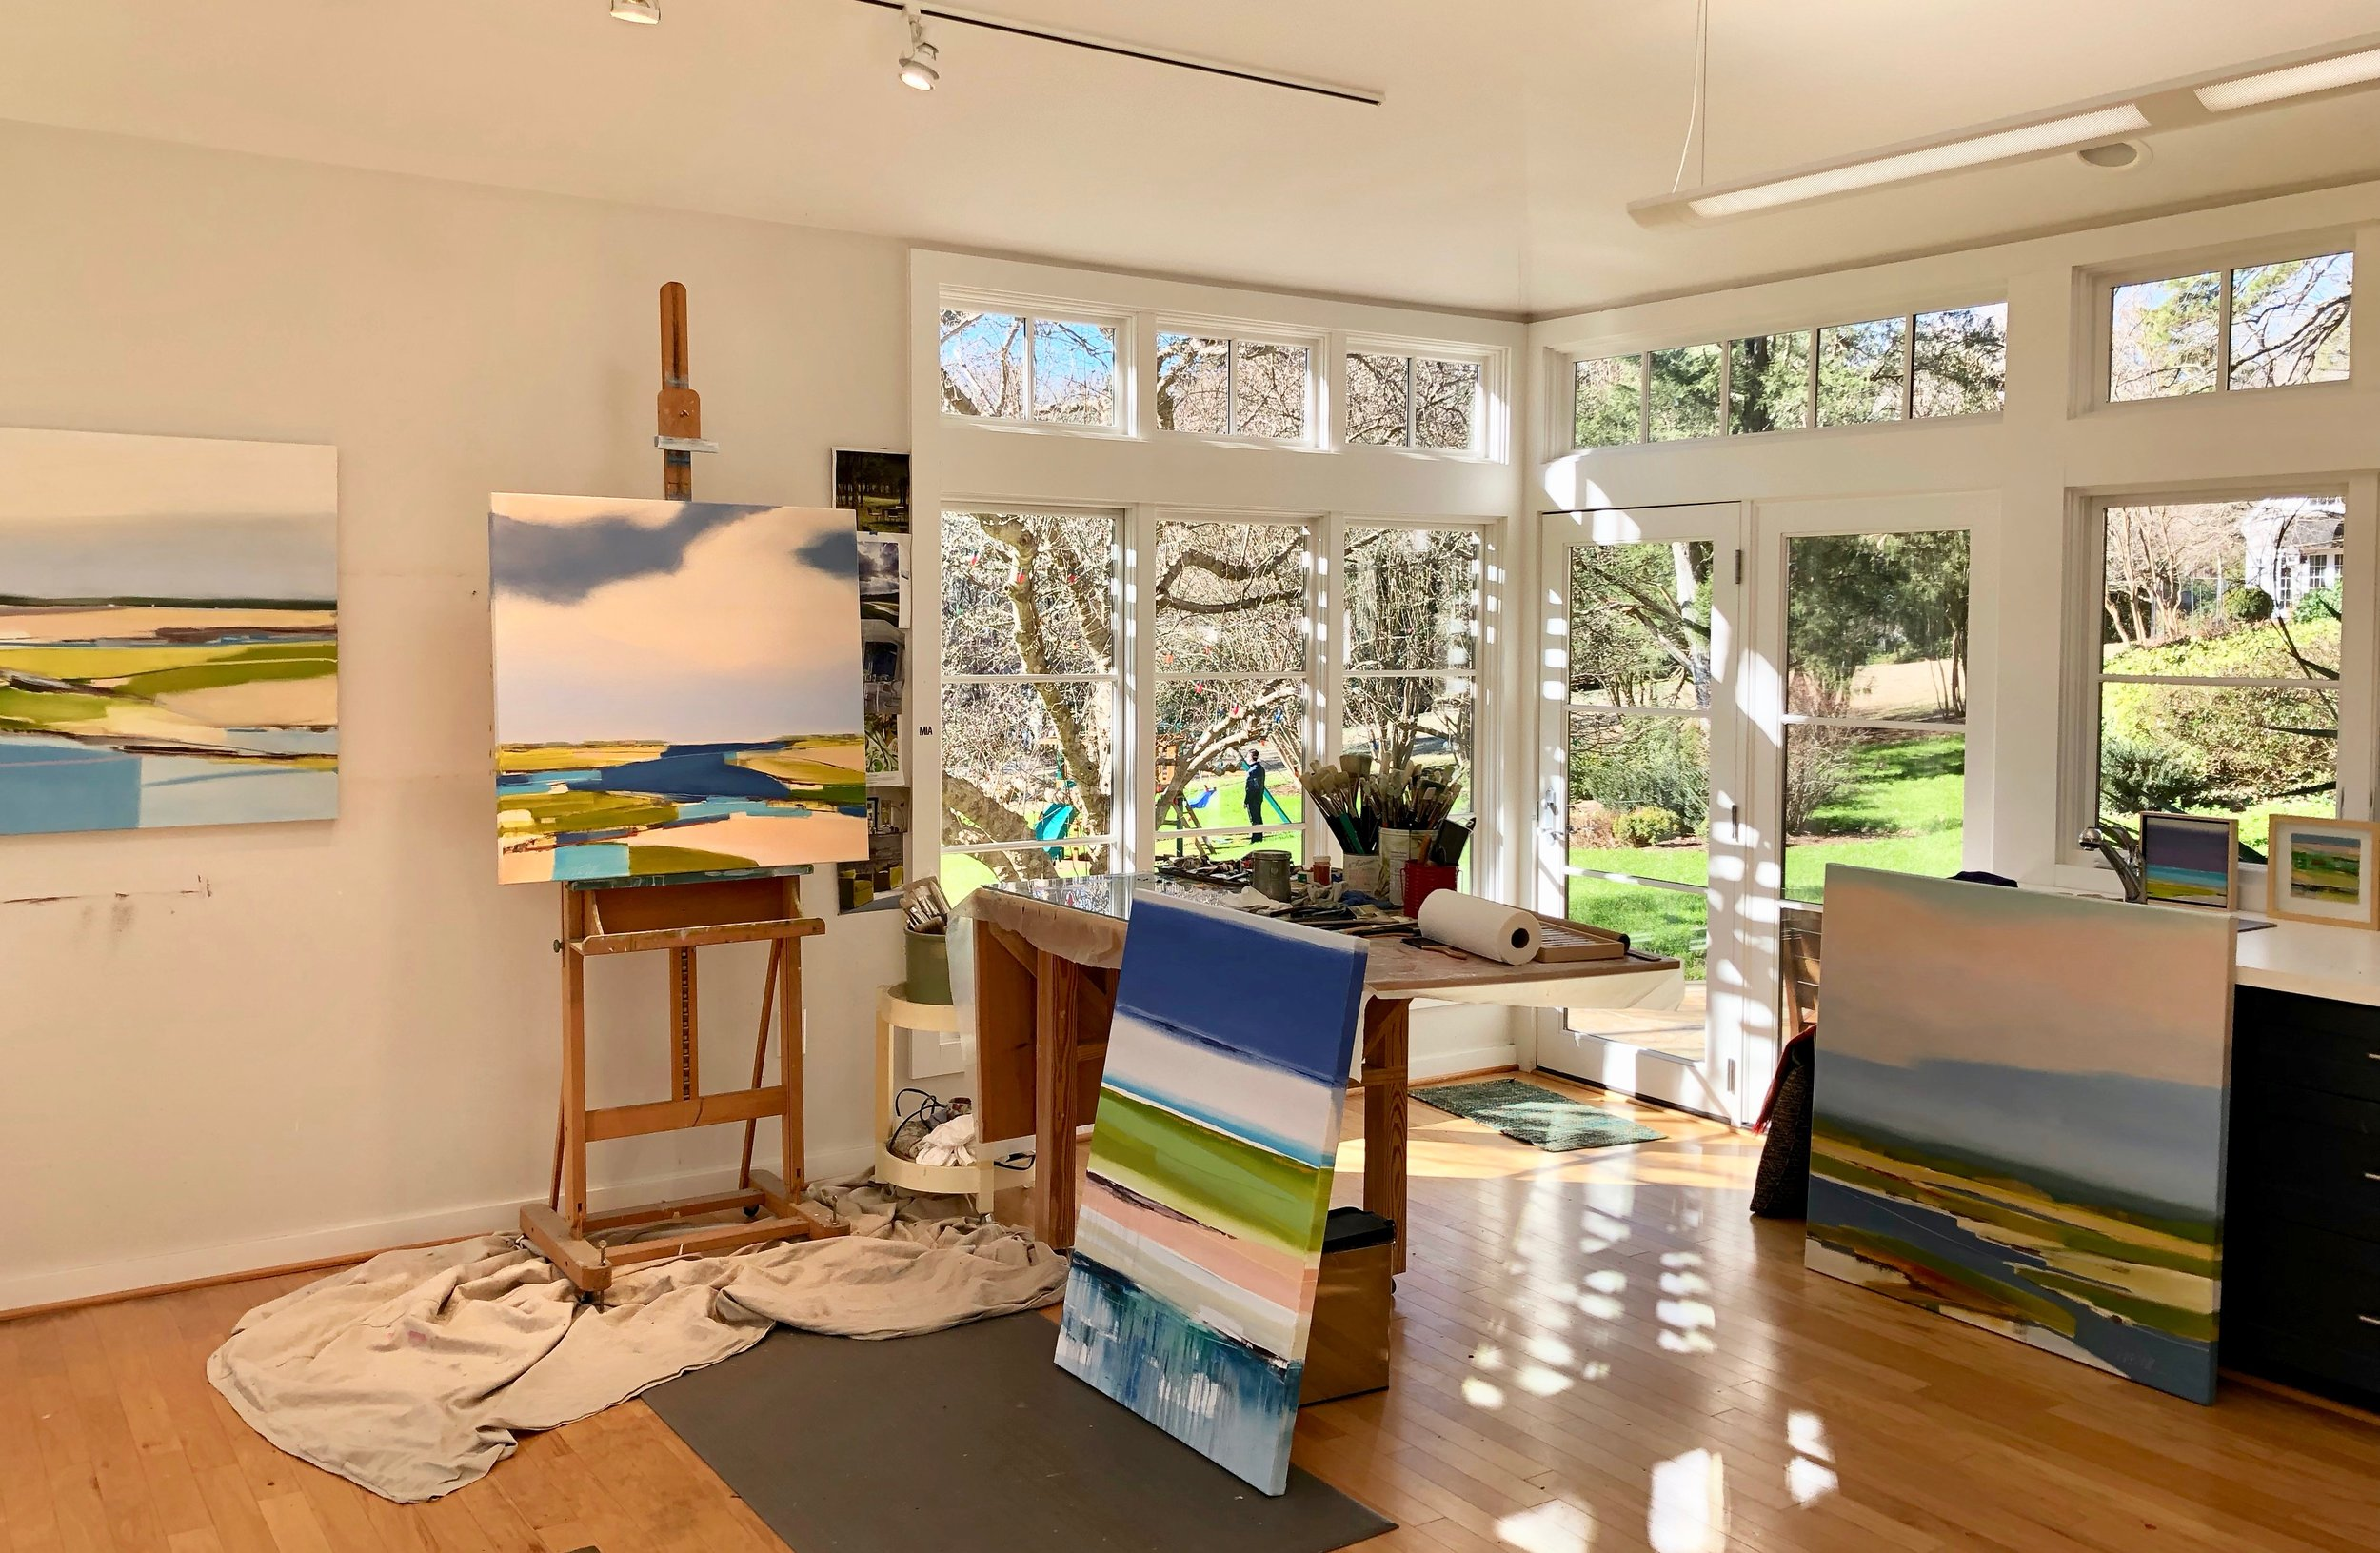 mary rountree moore's studio in chapel hill, nc